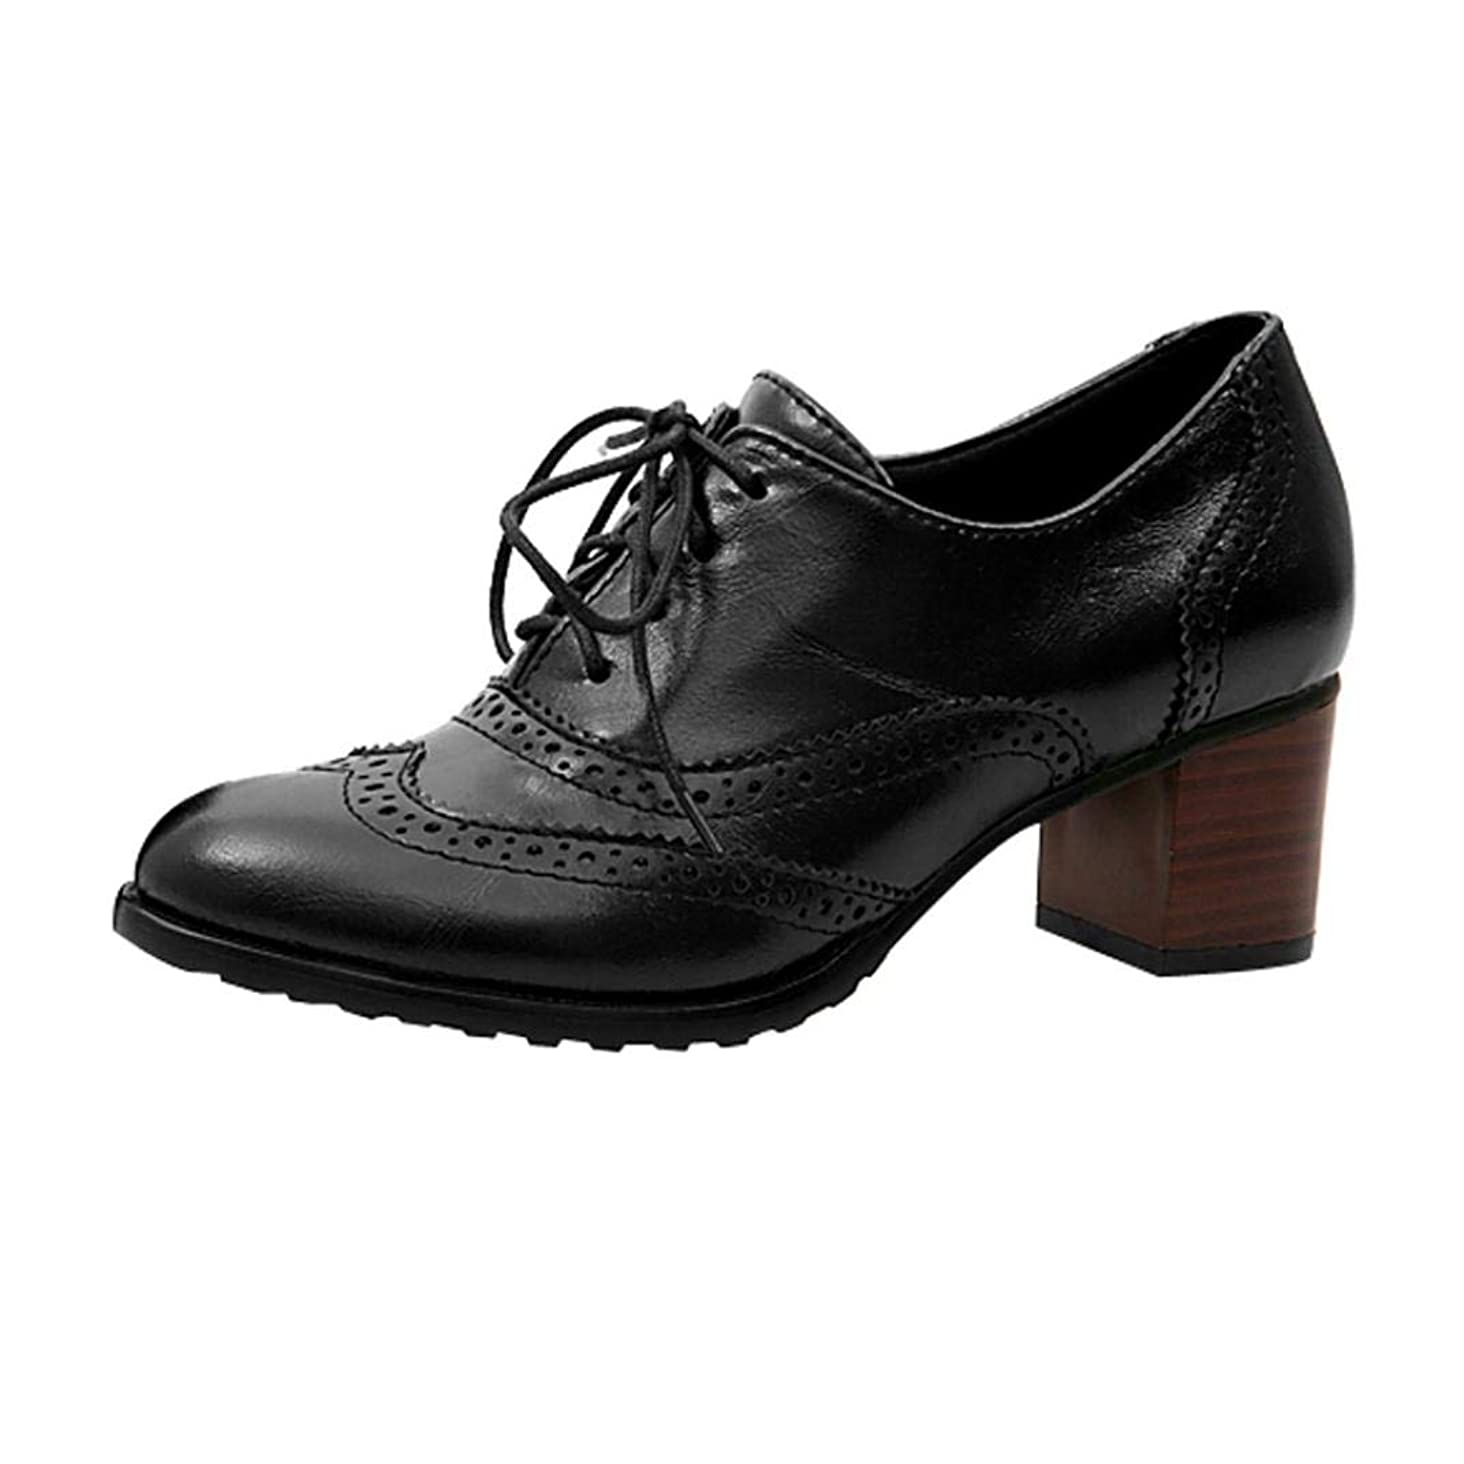 UOKNICE Fashion Women' Lace up Hollow Shoes Oxford Shallow Mouth Single Shoes Block Heel Shoes